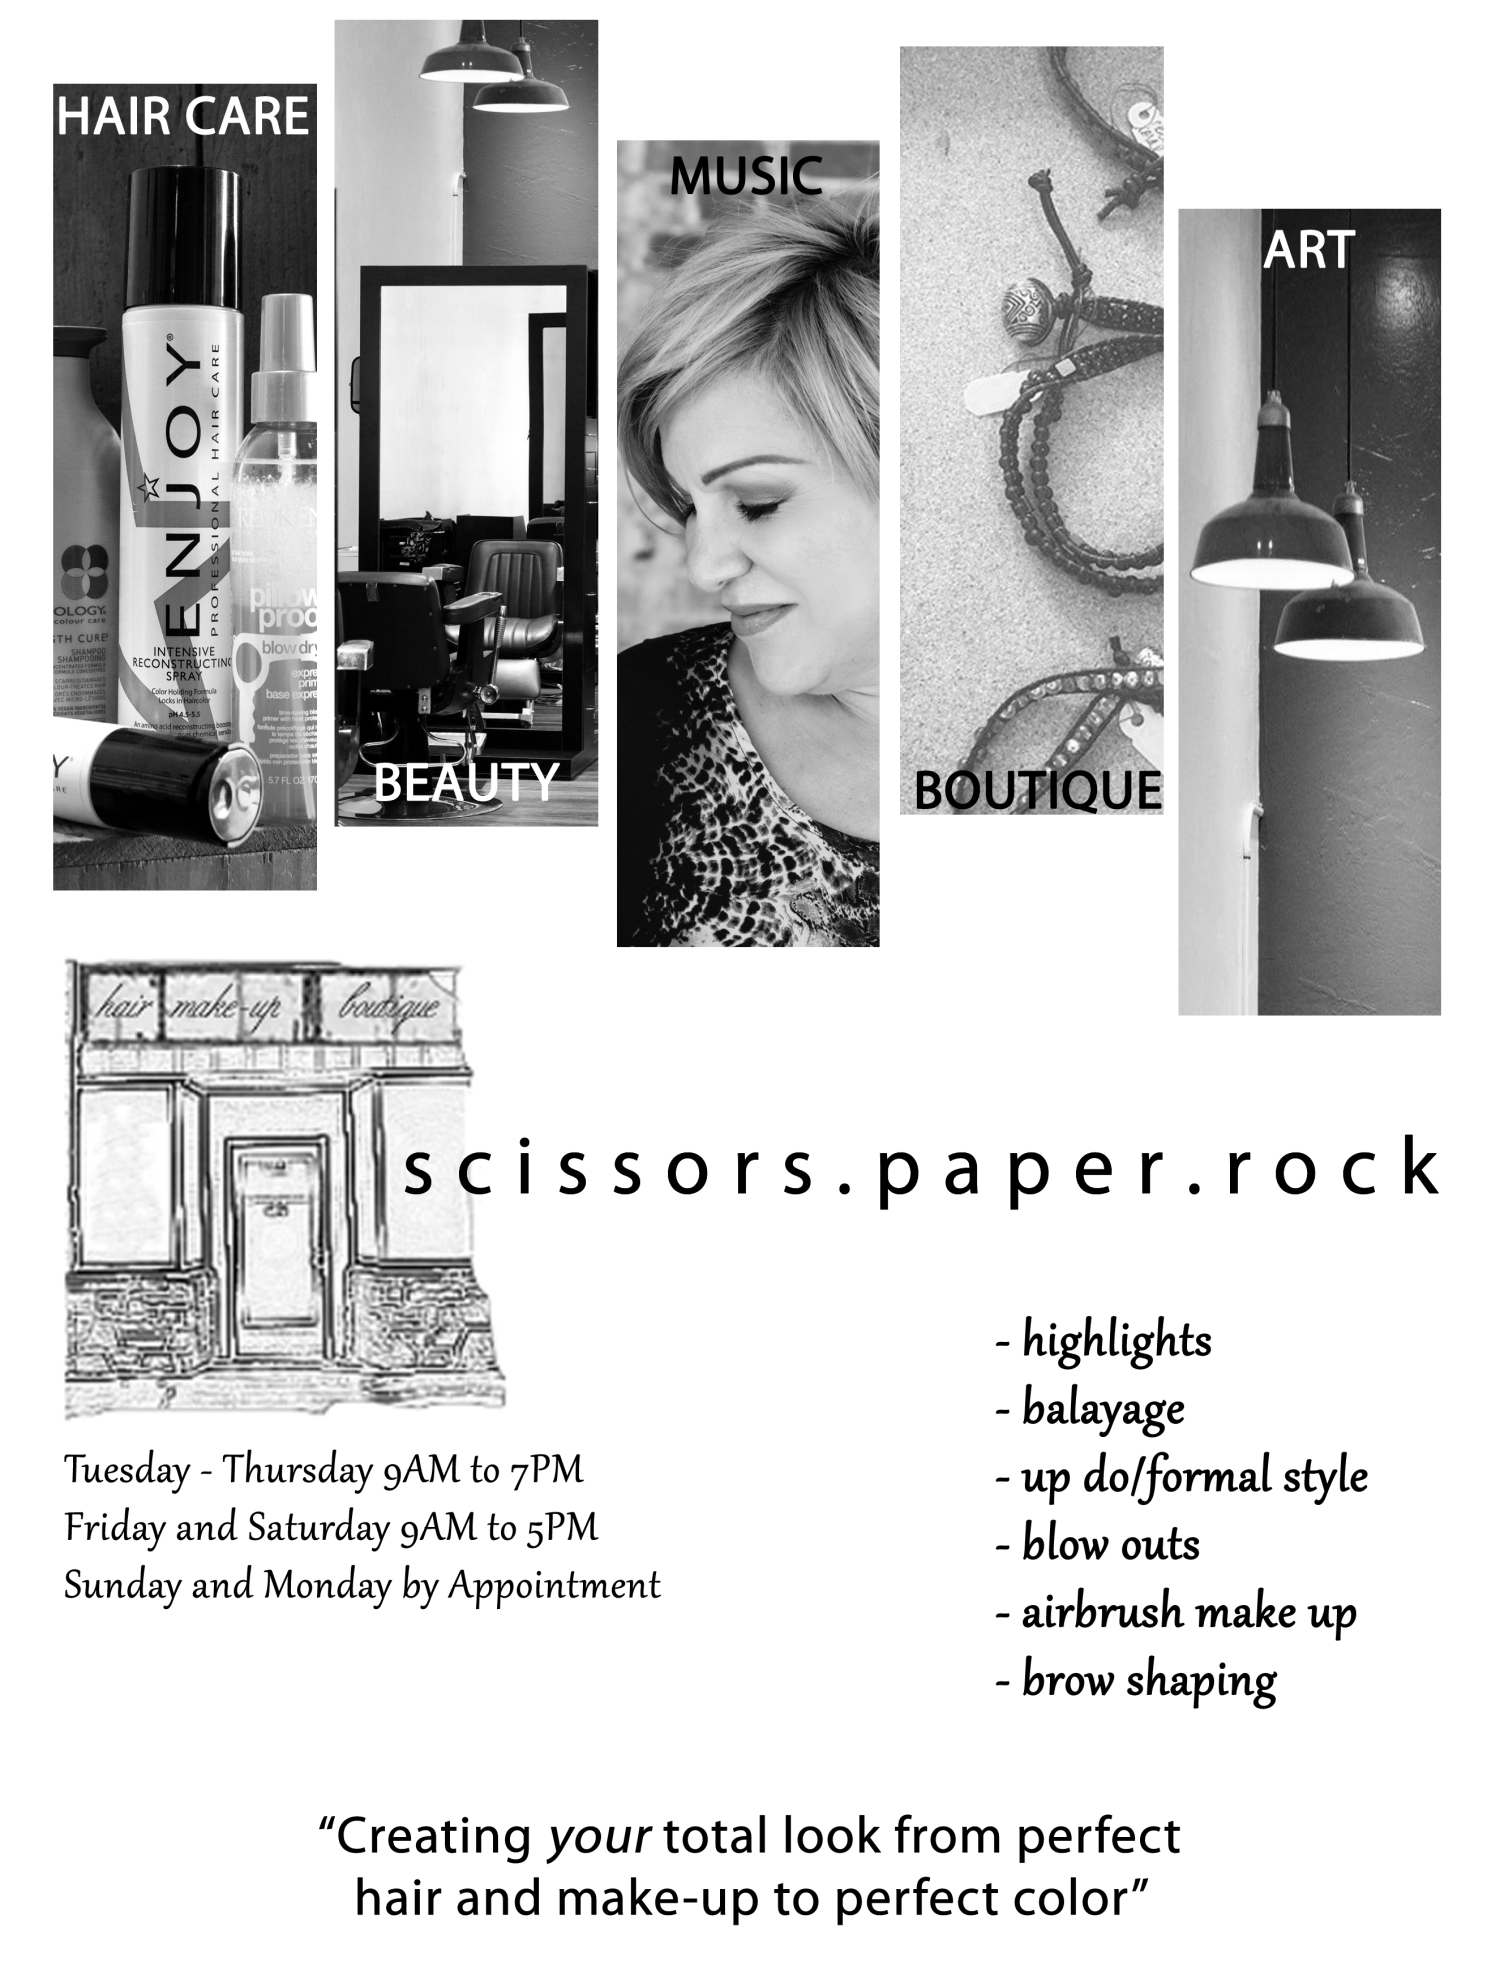 Scissors Paper Rock Salon and Boutique